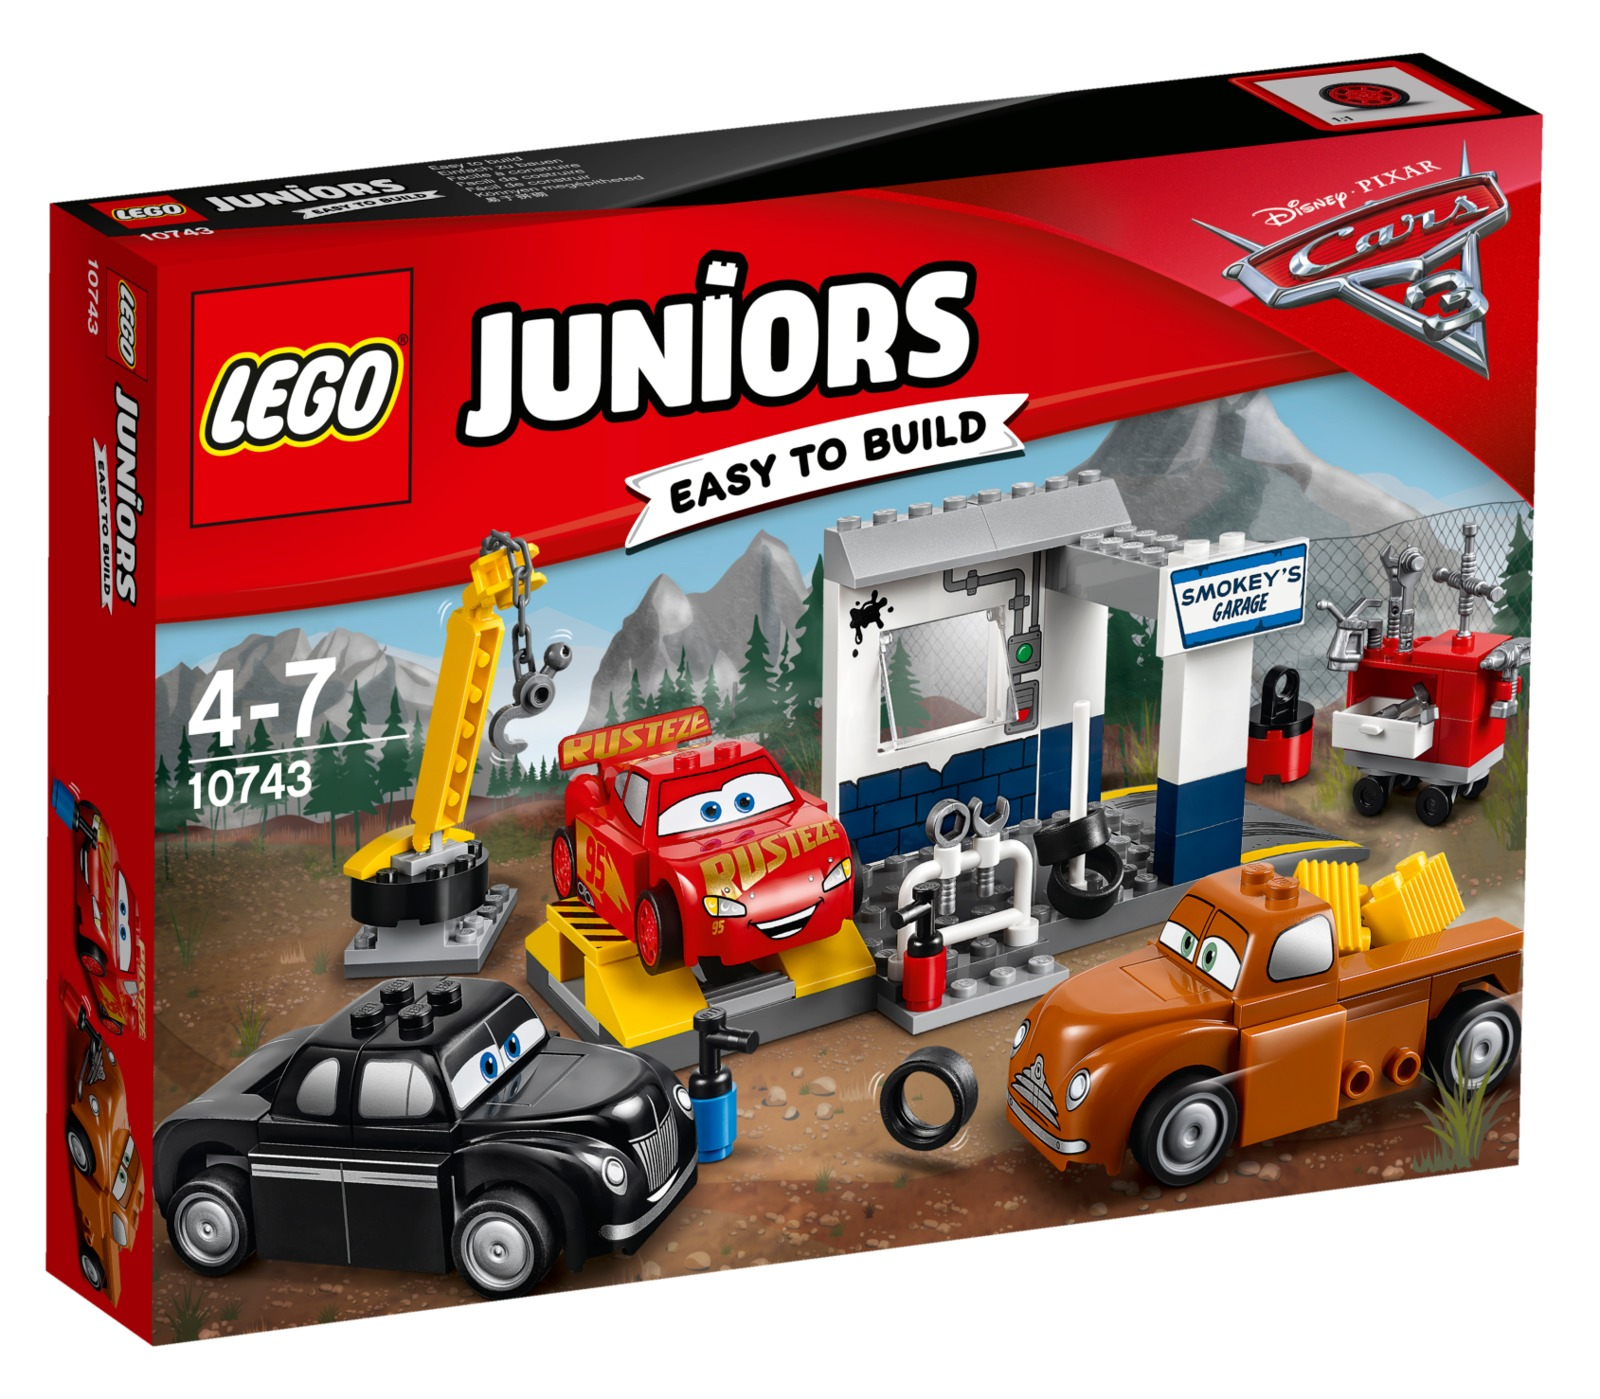 LEGO Juniors - Smokey's Garage (10743) image